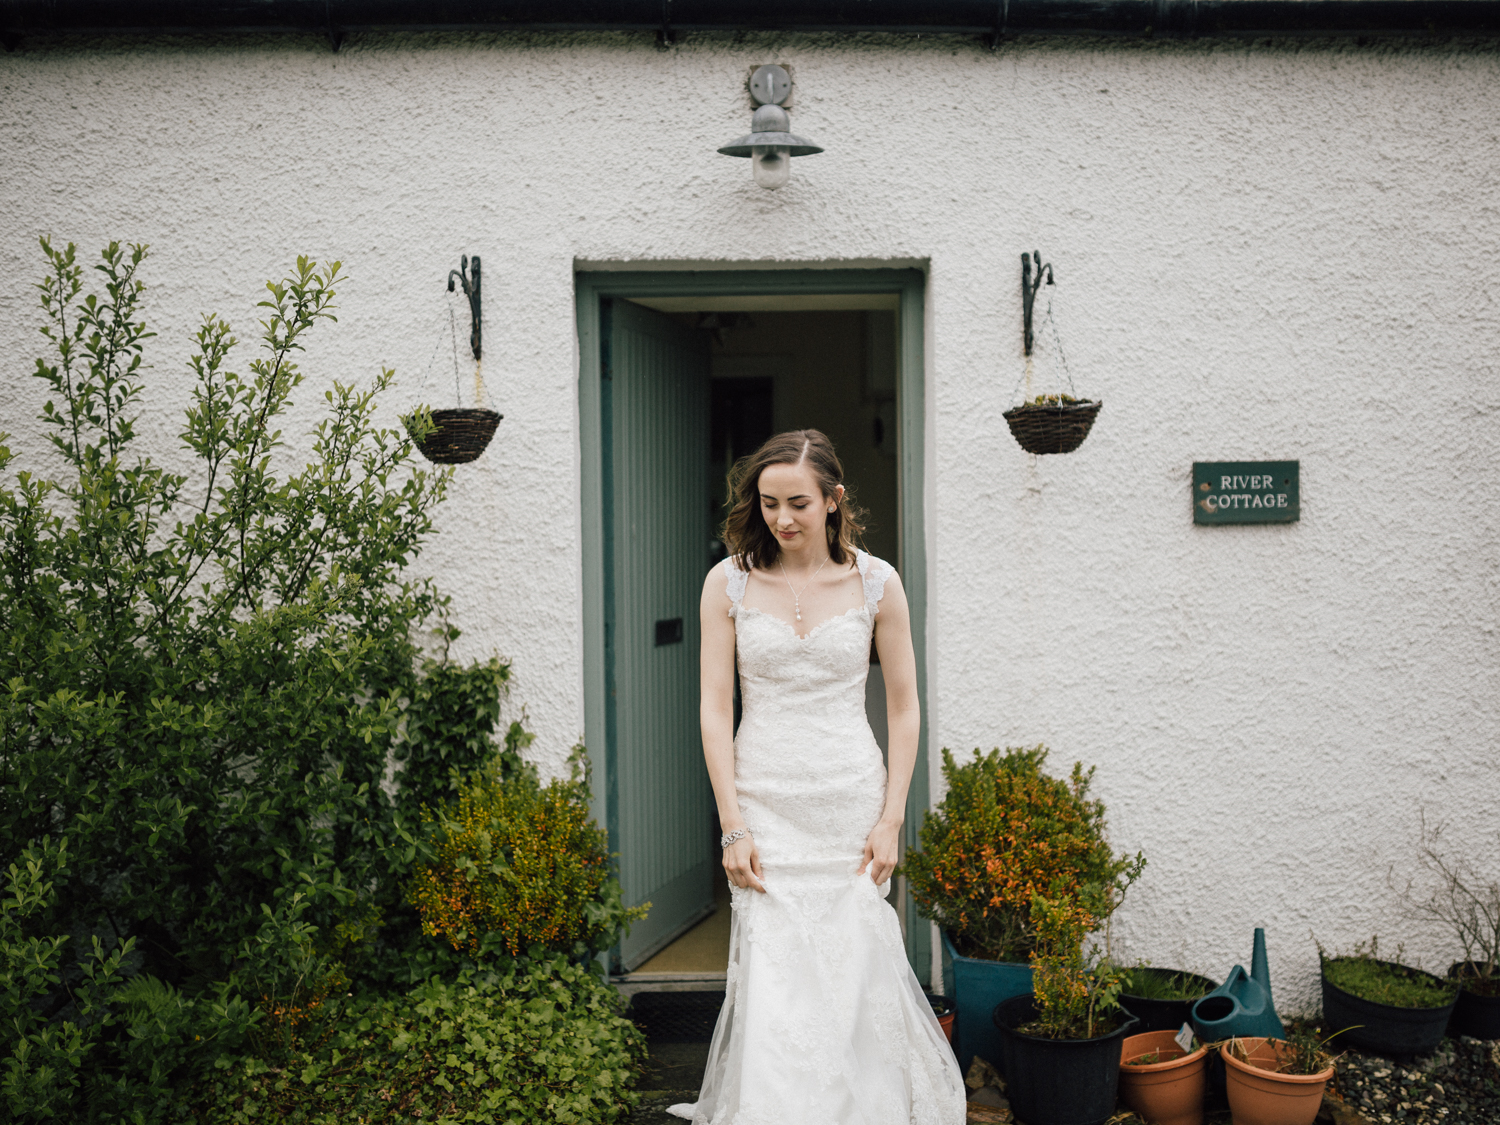 capyture-wedding-photographer-destination-elopement-isle-skye-scotland-115